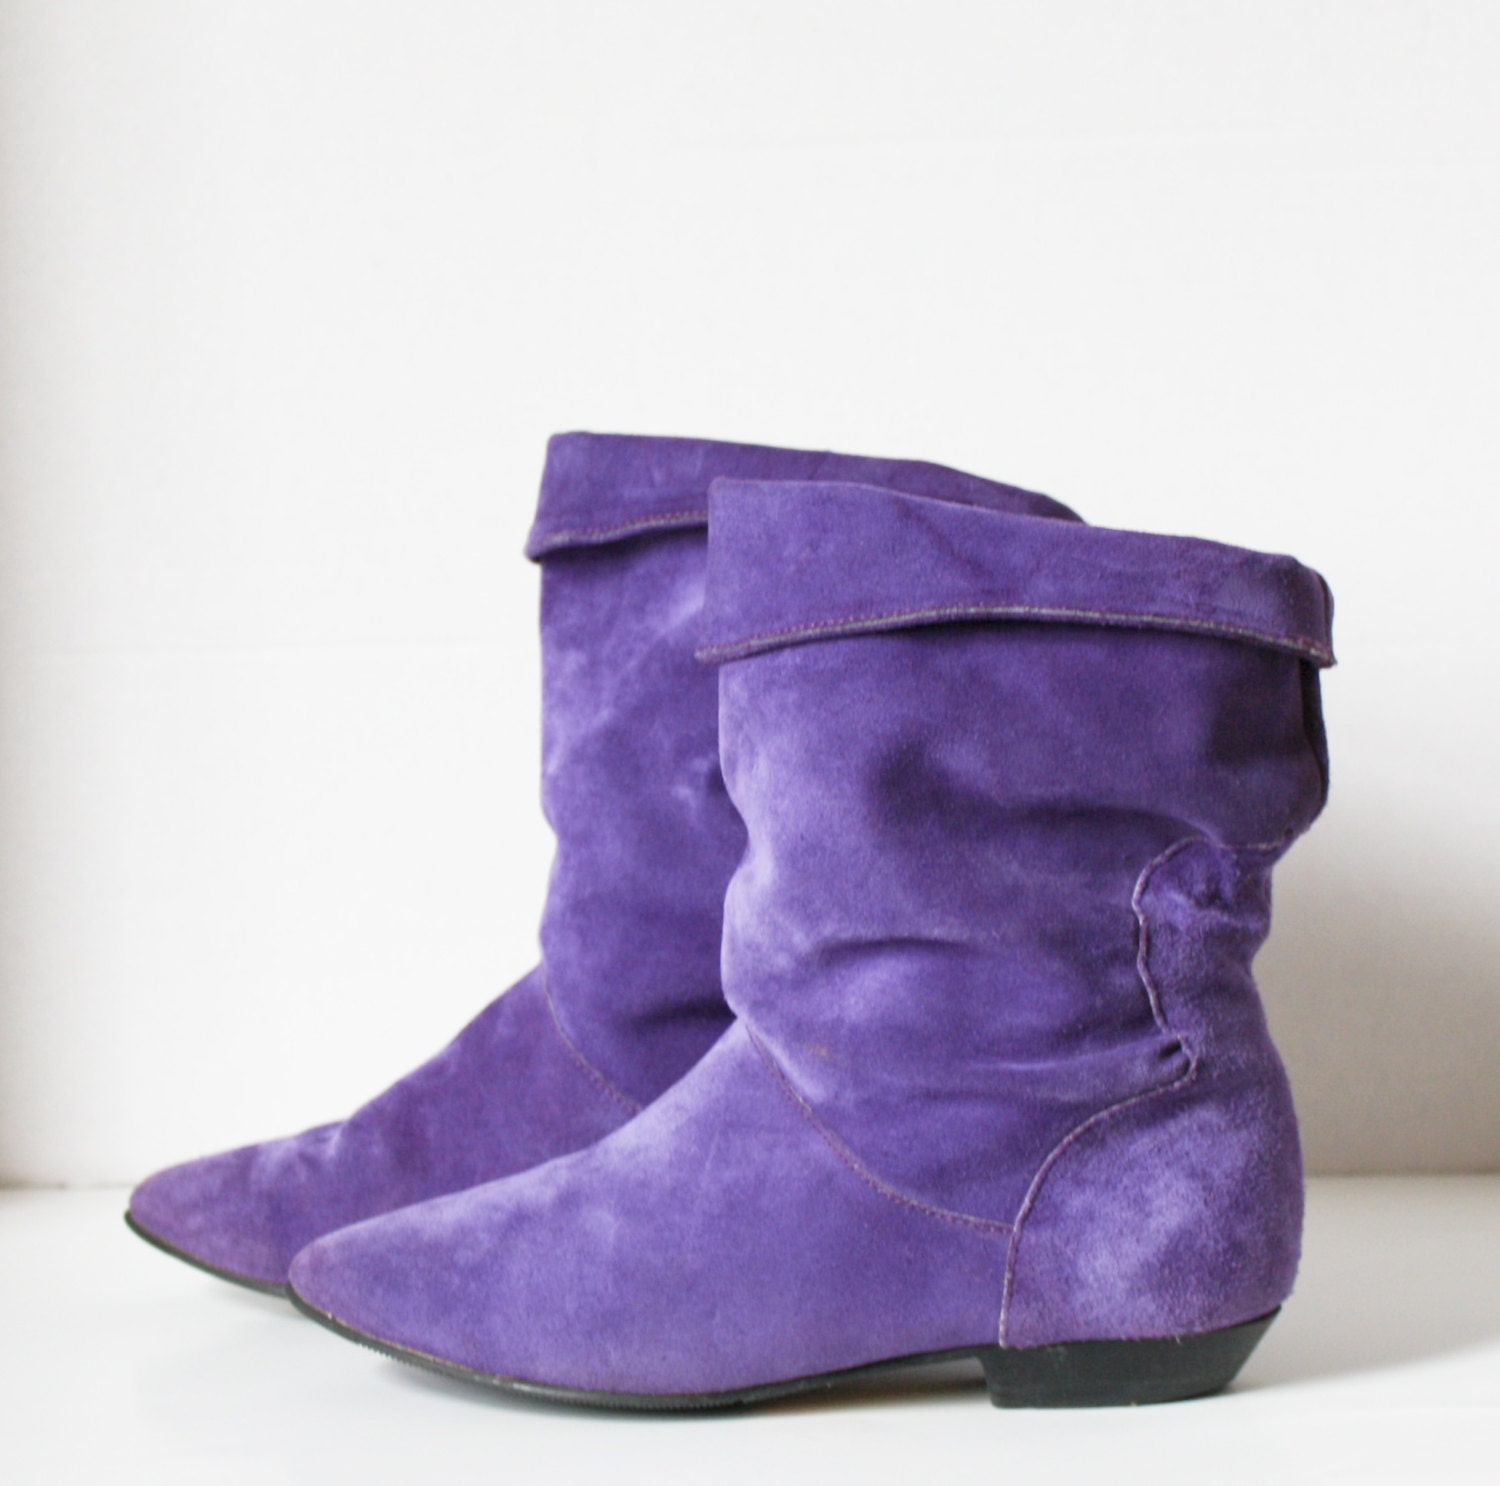 vintage 1980s purple suede boots flats slouch editions